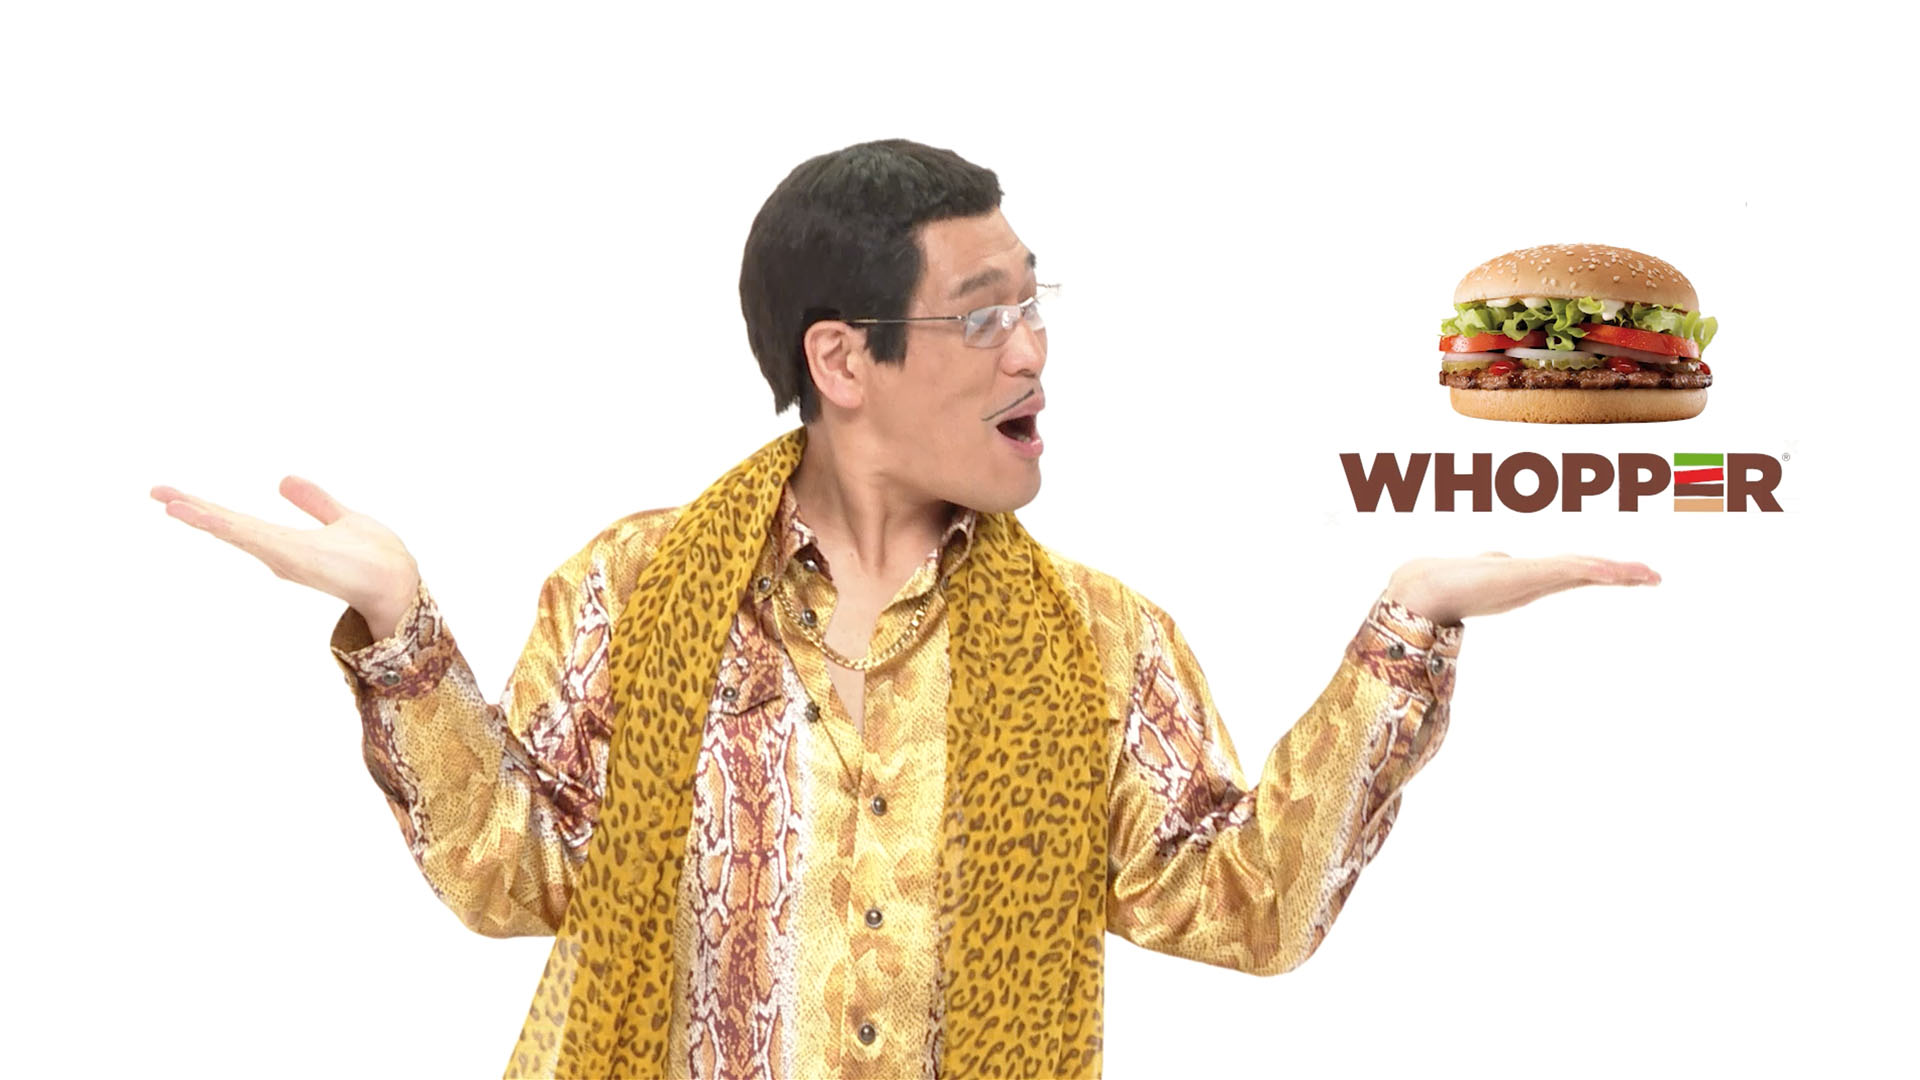 PIKOTARO is Back: Pineapple Pen 'Whopper' Pen? WHAT!